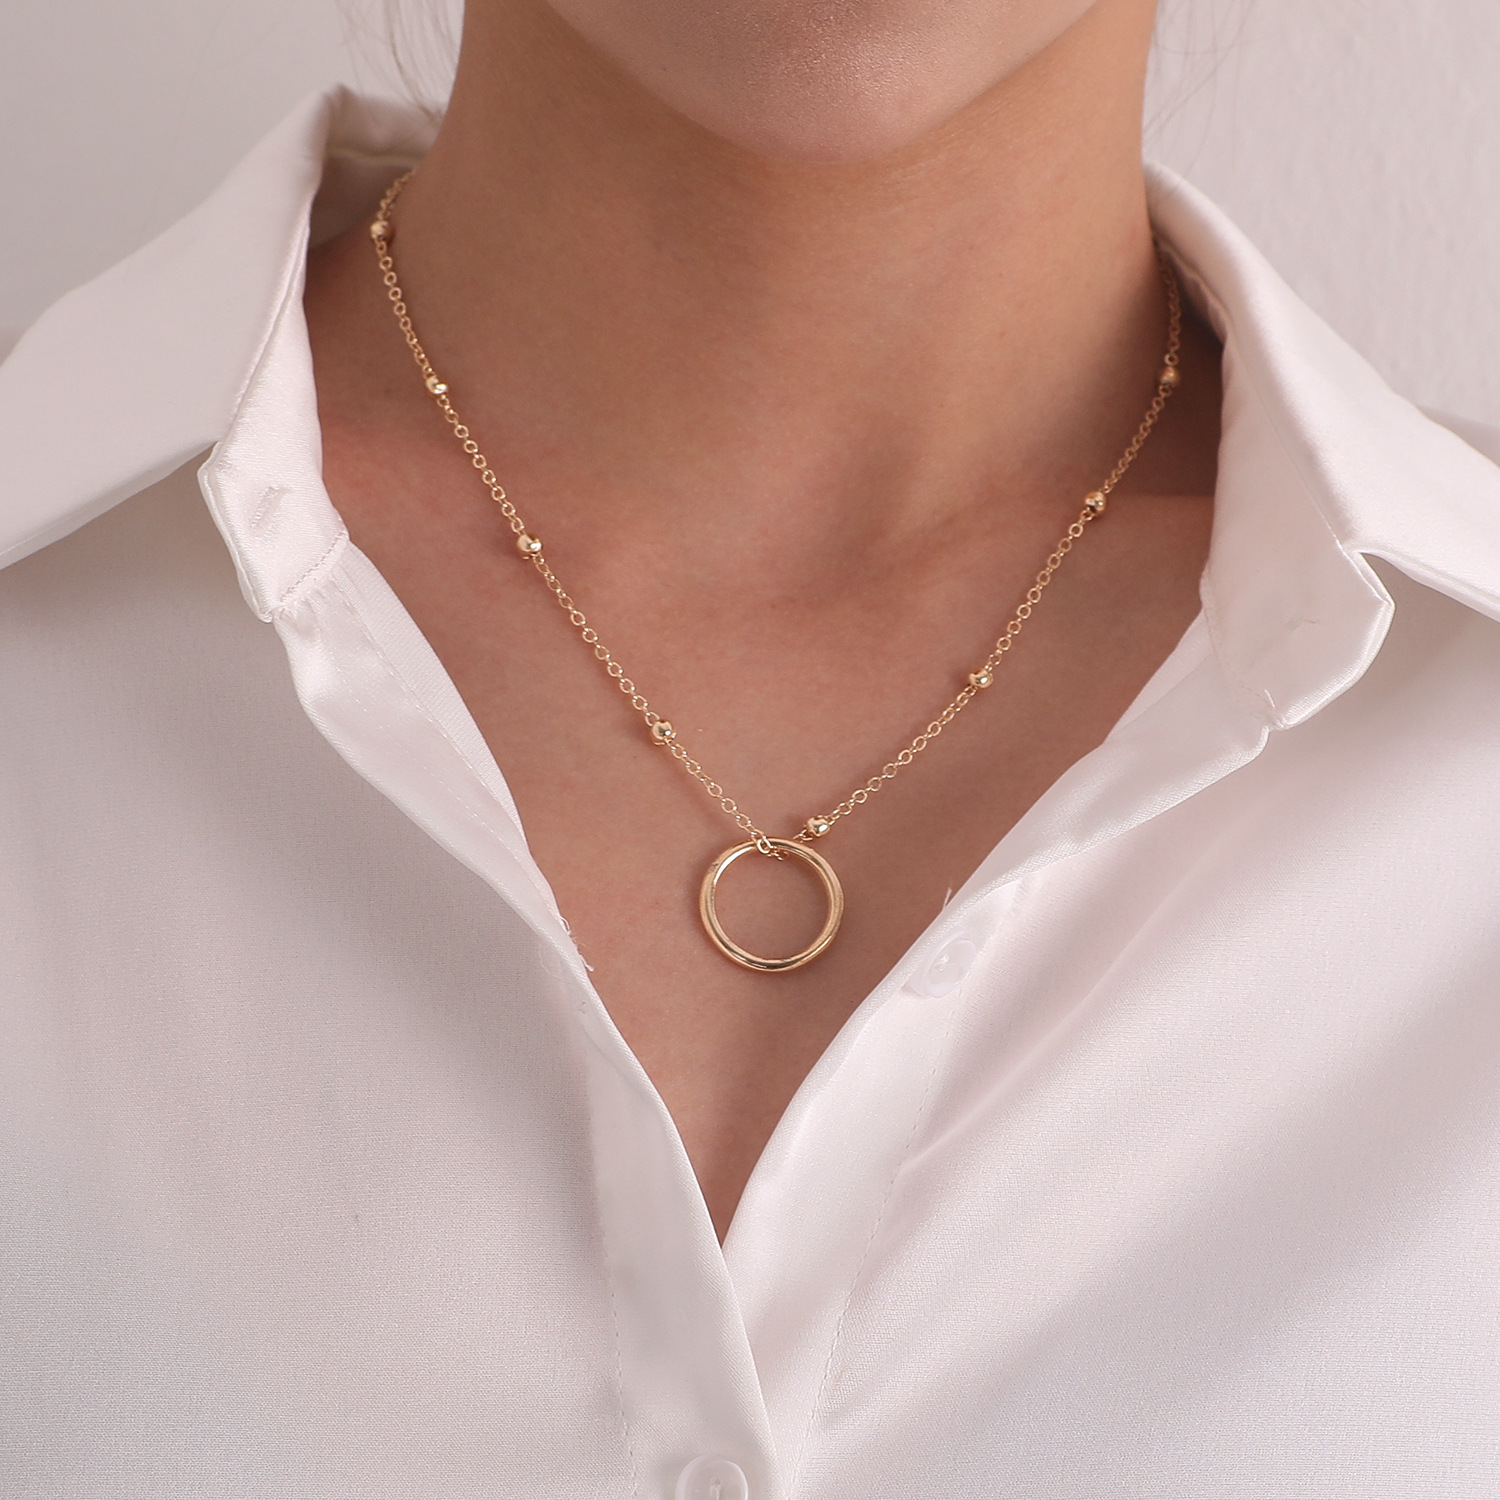 Simple Circle Pendant Necklace for Women Gold Silver Color Bead Chain Clavicle Chain Short Necklaces Female 2020 Fashion Jewelry